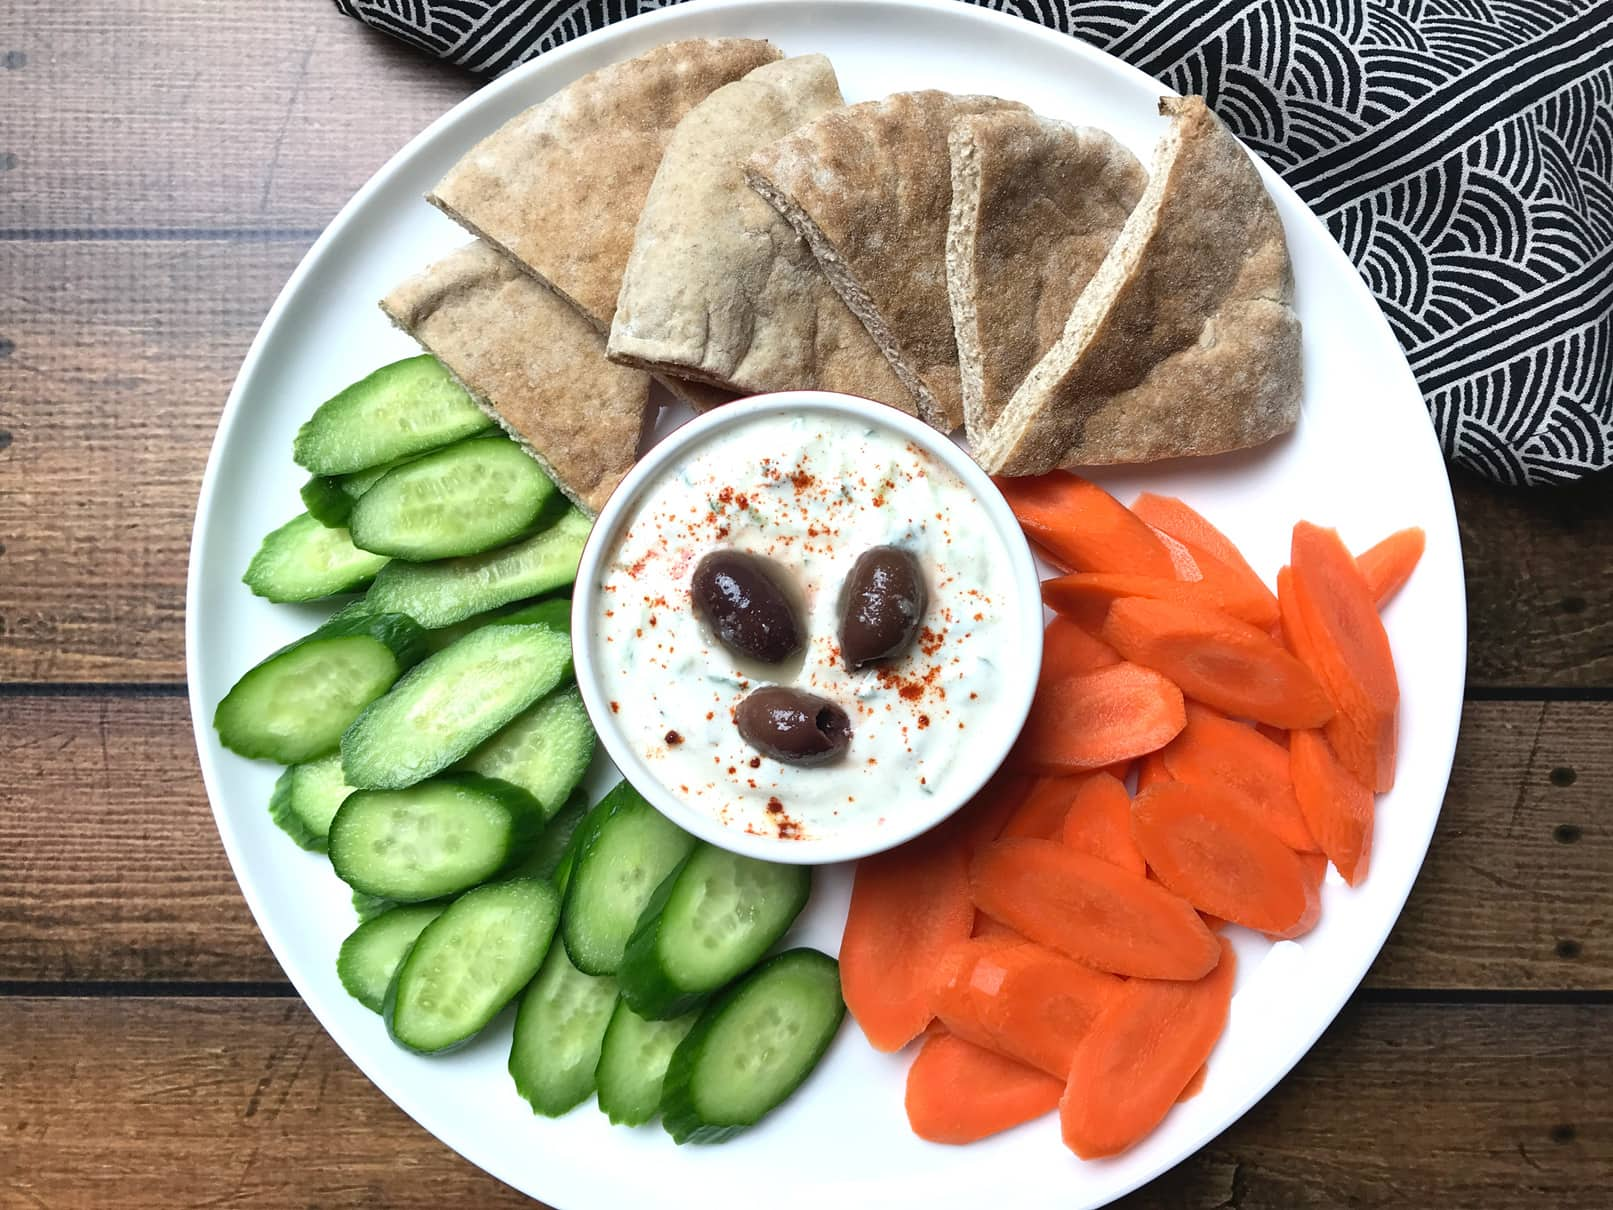 Easy Tzatziki dip served with sliced pita bread and vegetables